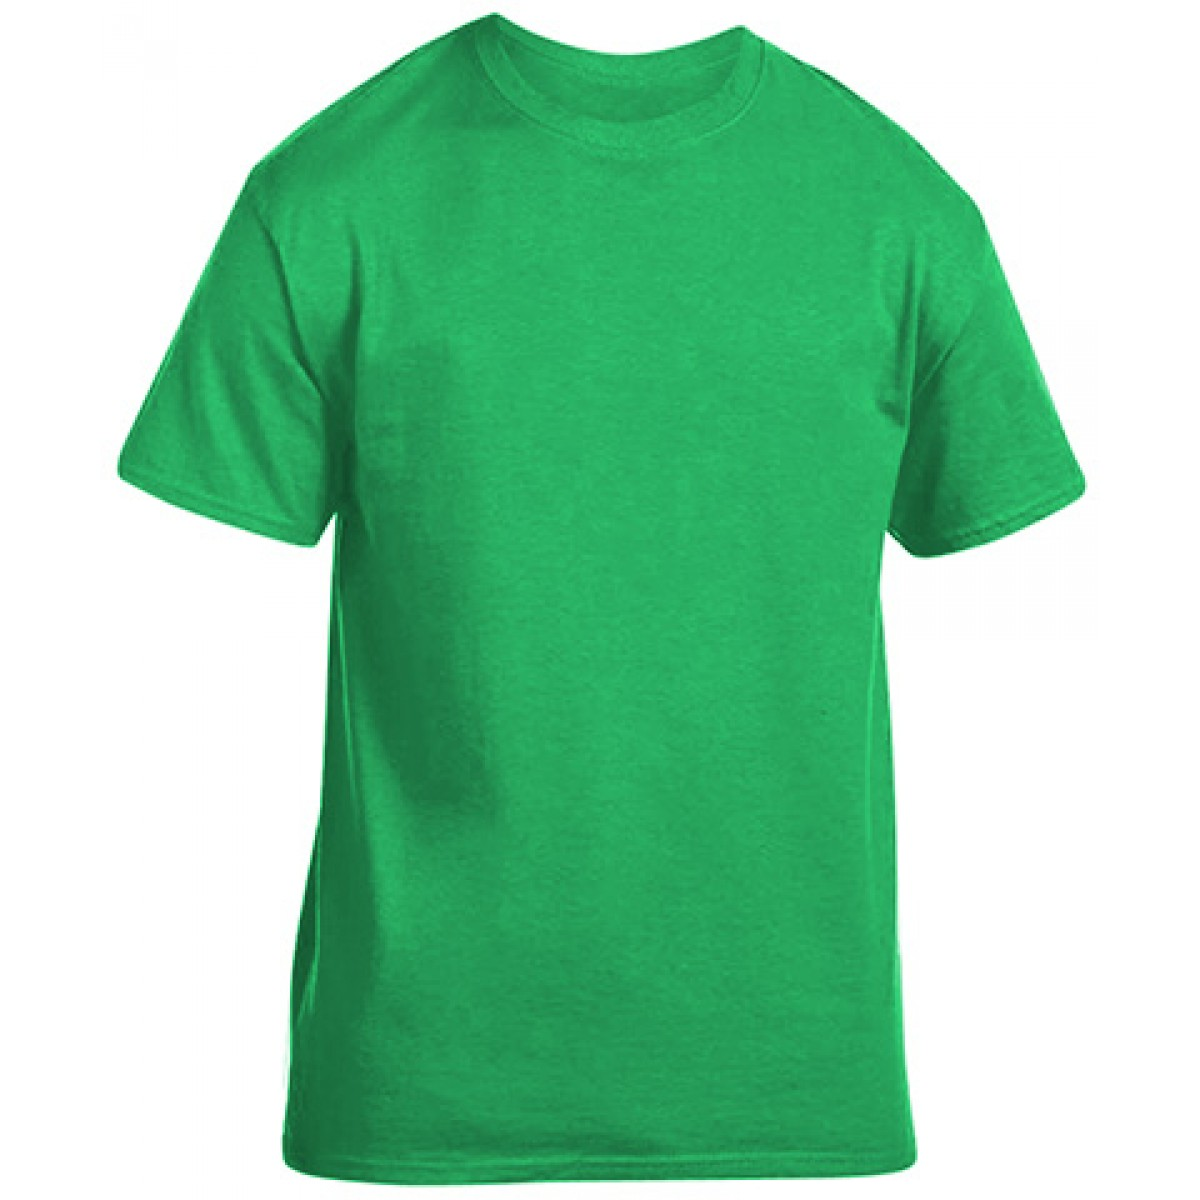 Soft 100% Cotton T-Shirt-Electric Green -L